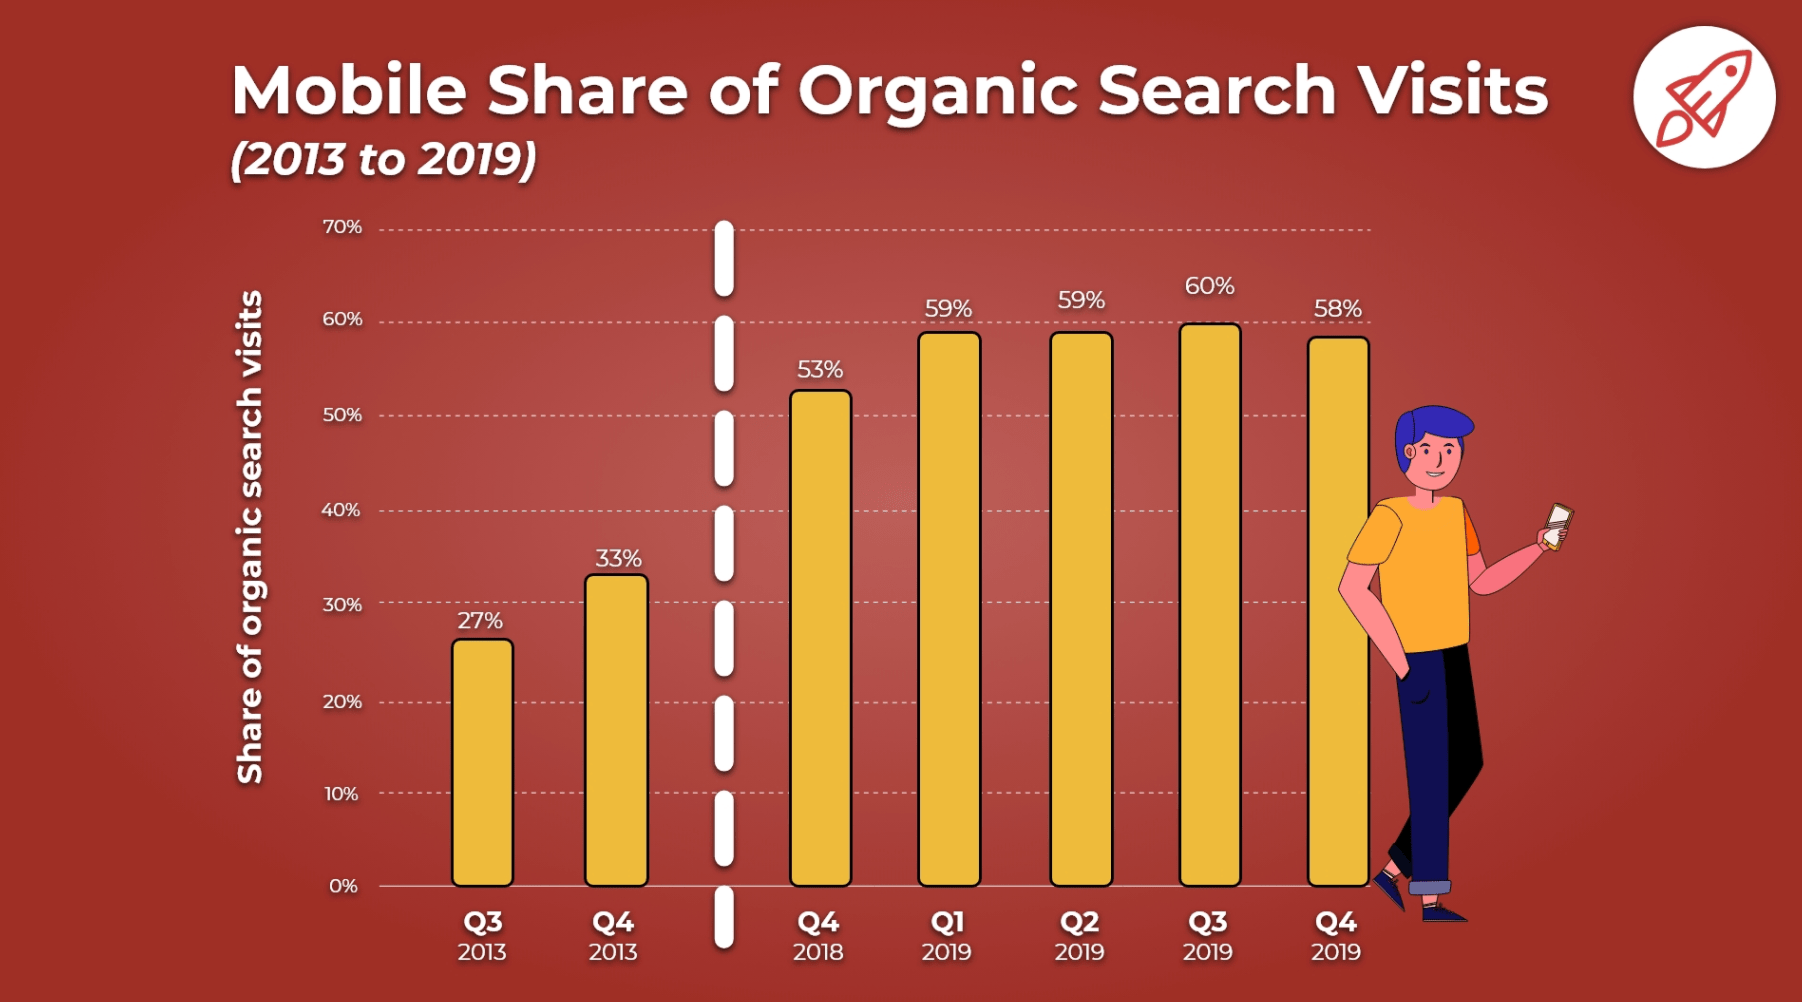 mobile share of organic search visits graph